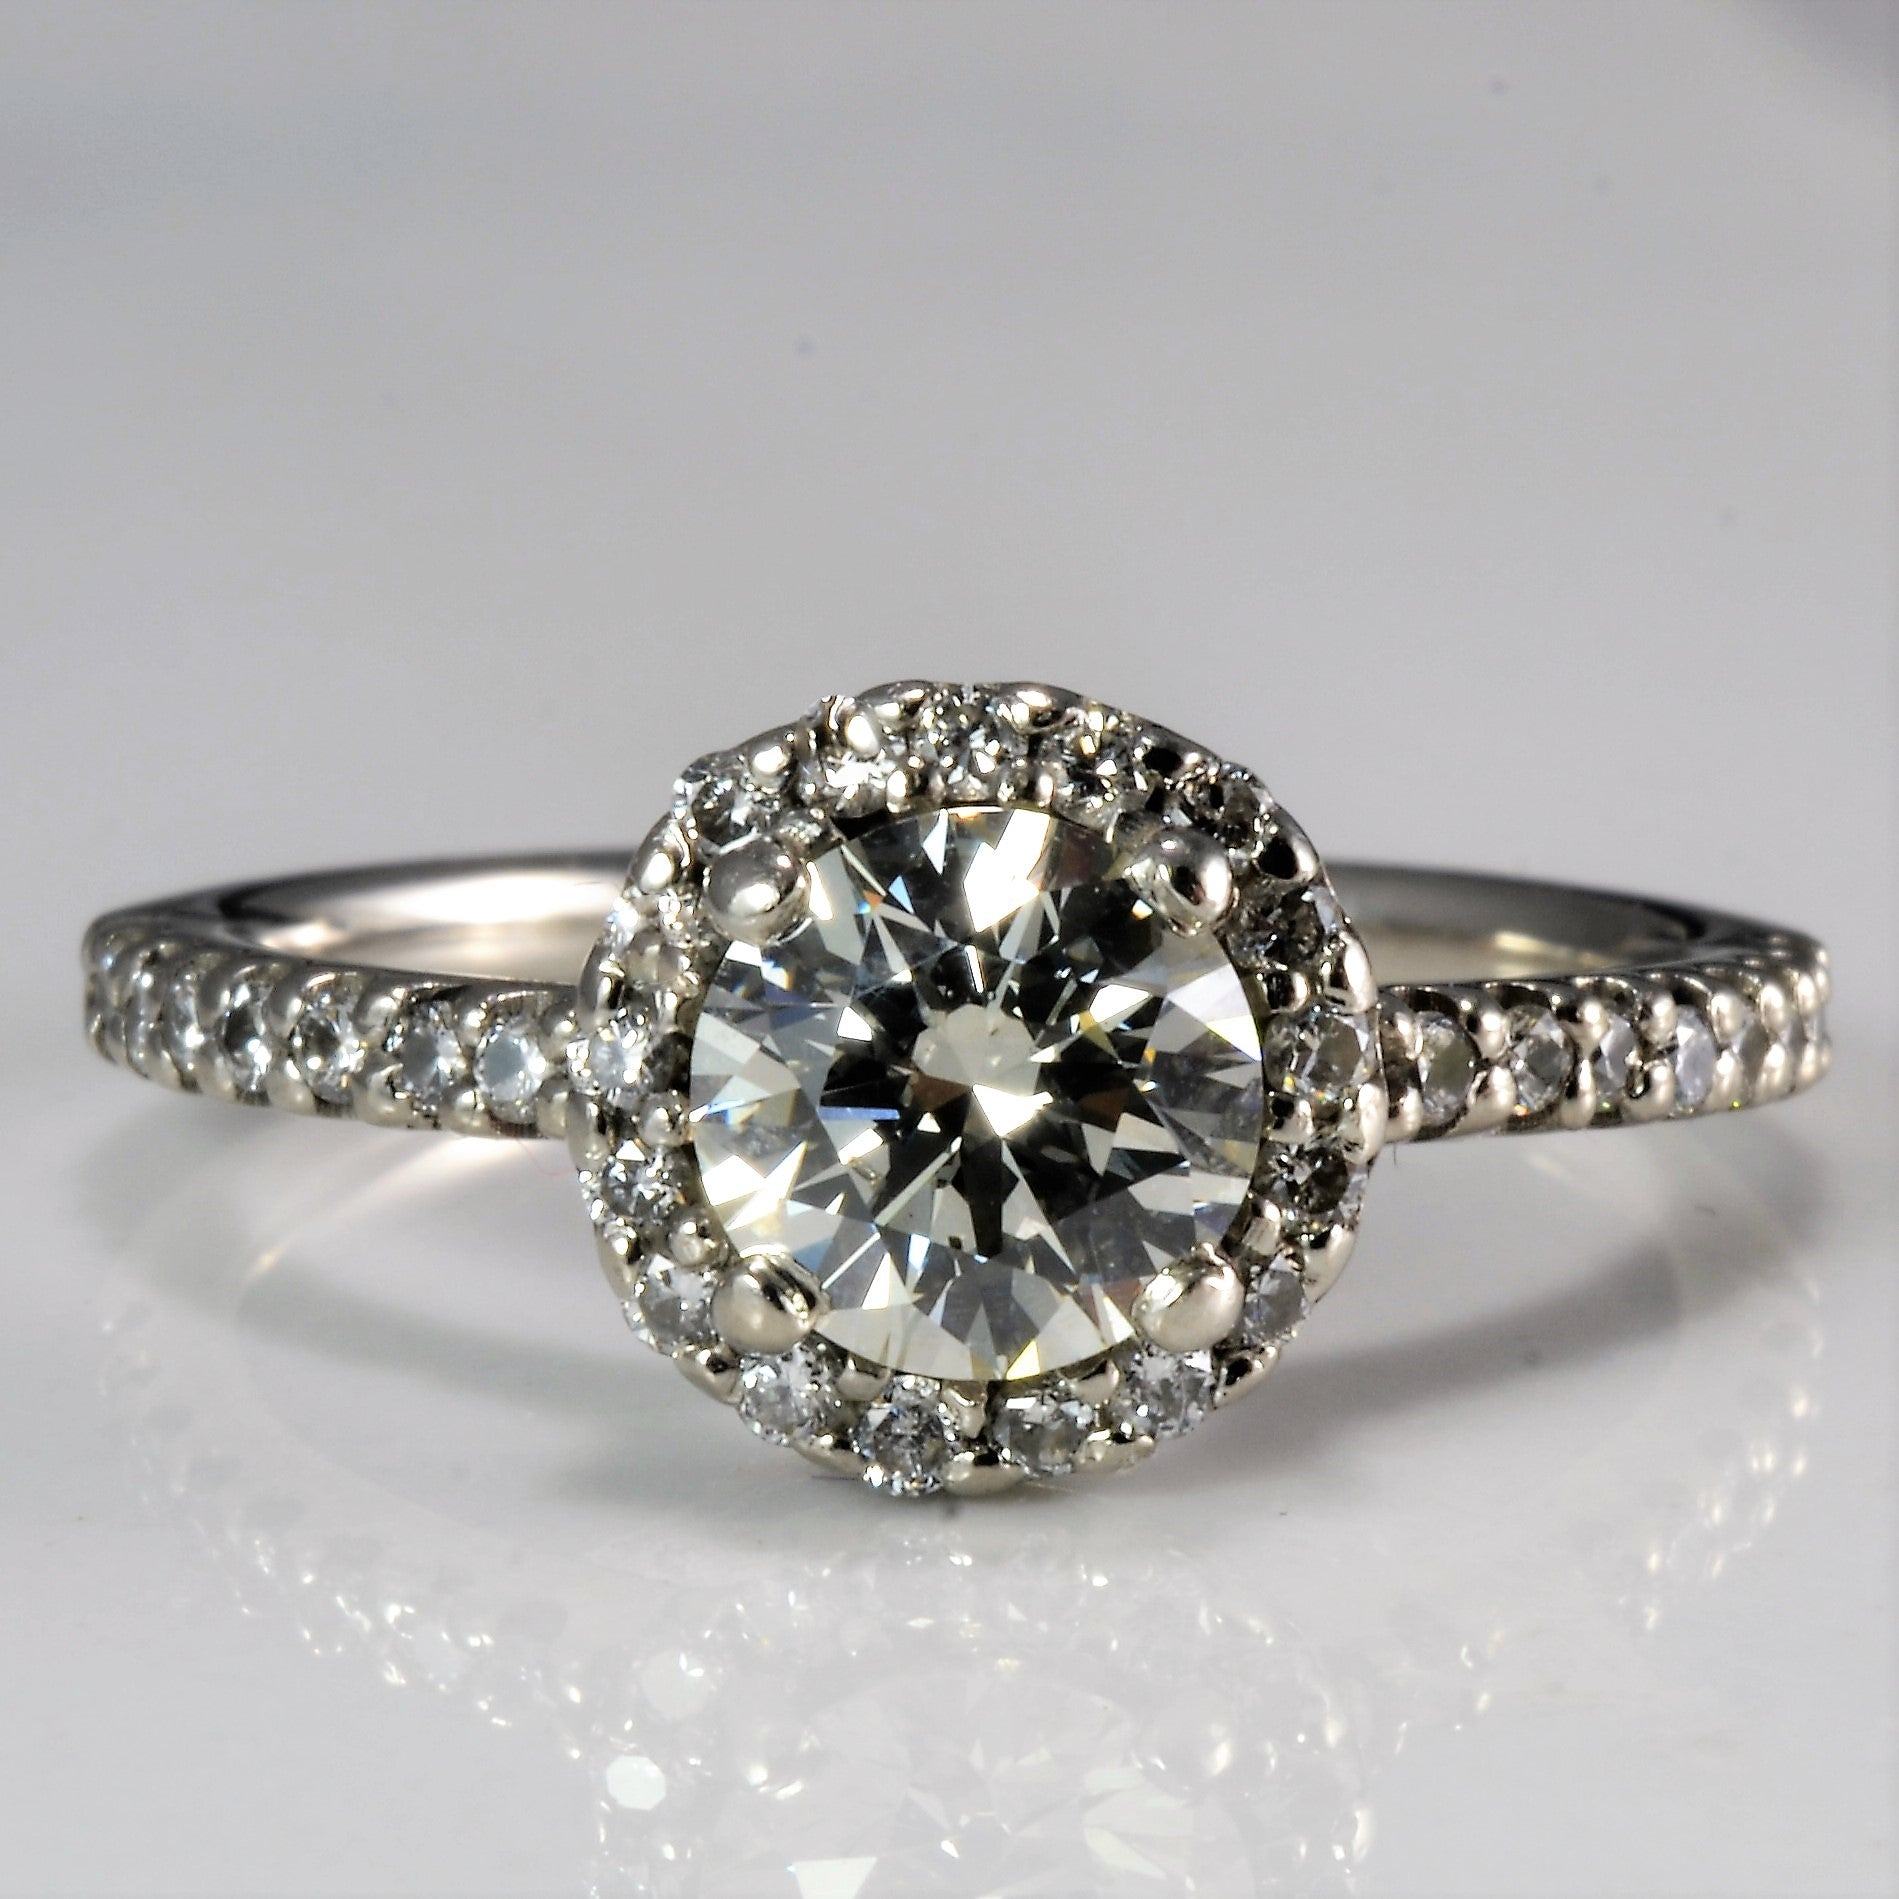 Halo Diamond Engagement Ring | 1.30 ctw, SZ 6.25 |